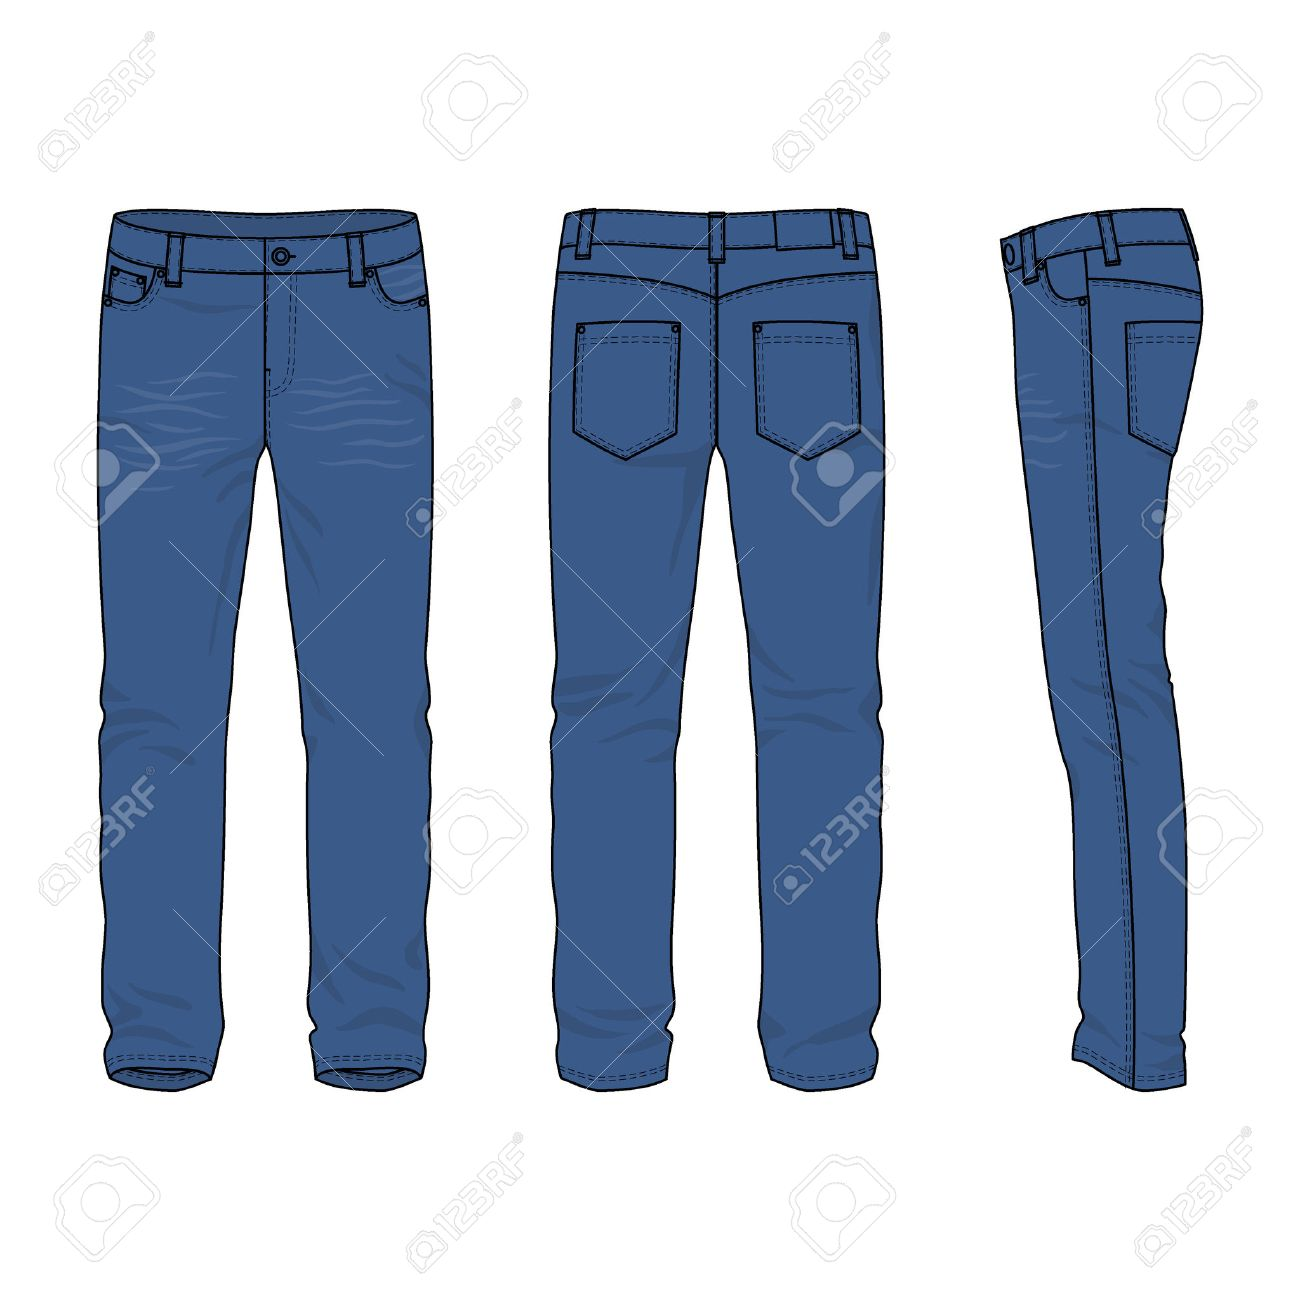 47 838 jeans stock illustrations cliparts and royalty free jeans rh 123rf com  blue jeans clip art free